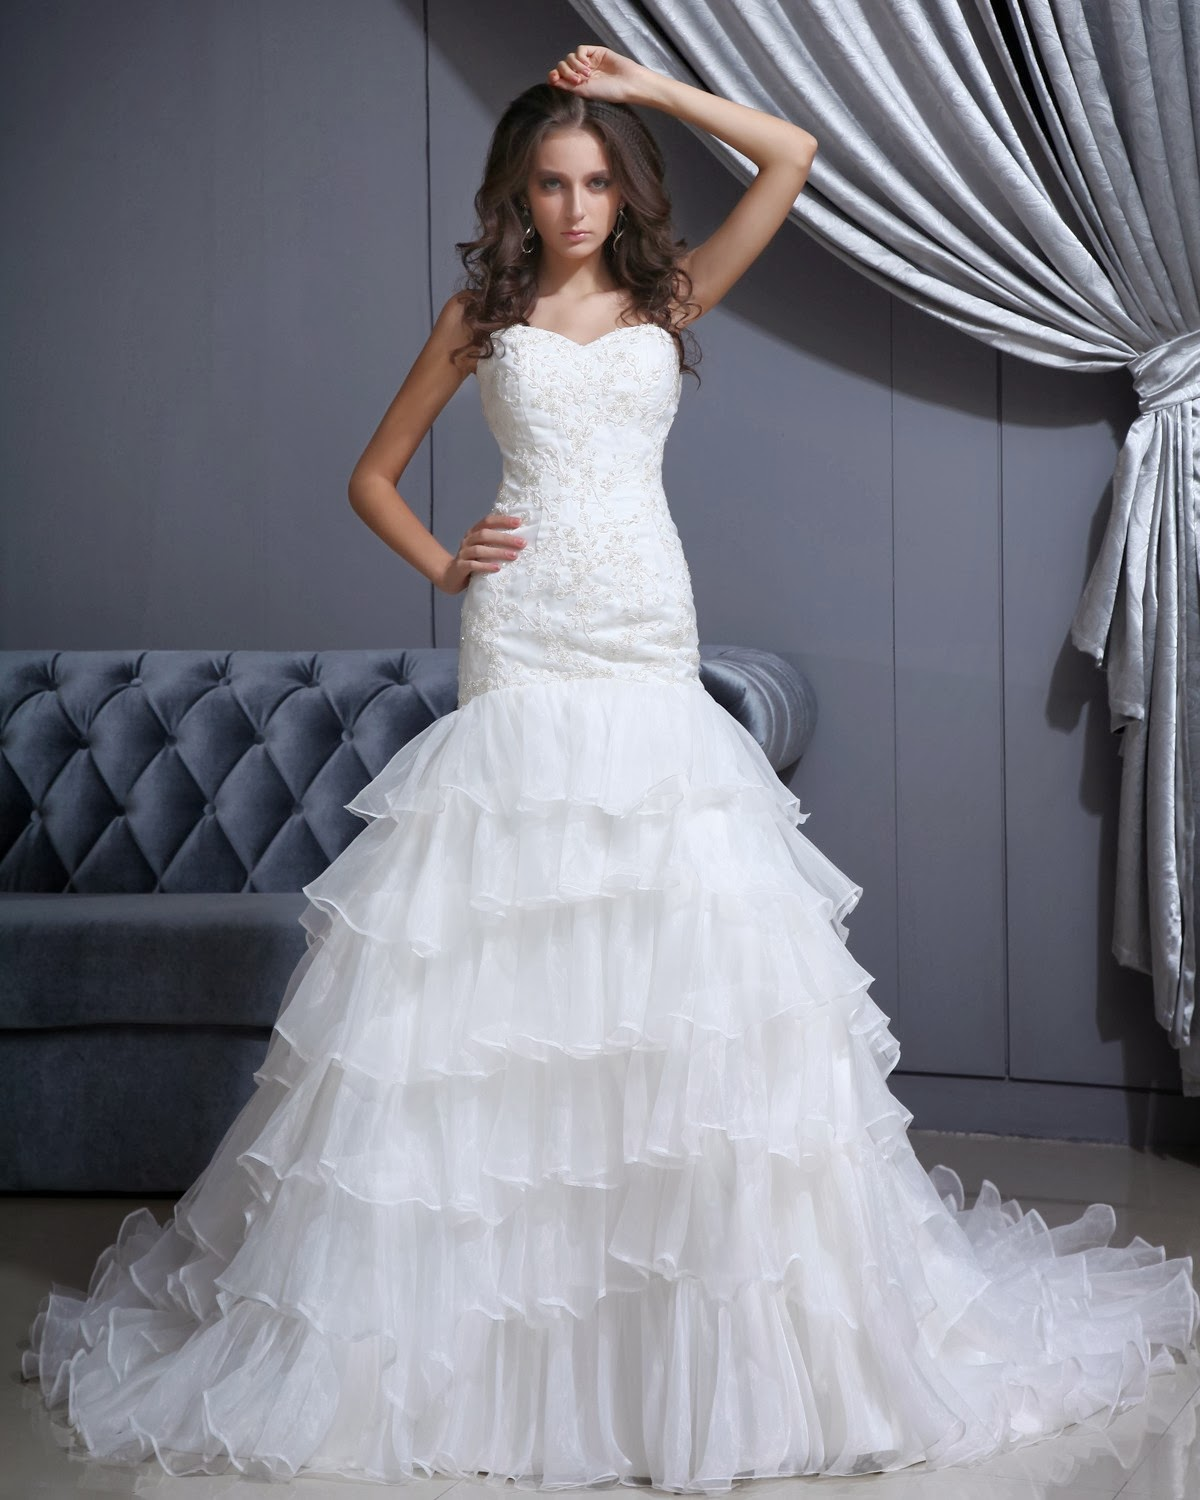 Wedding dress finding discount wedding gowns online for Wedding dresses discount online